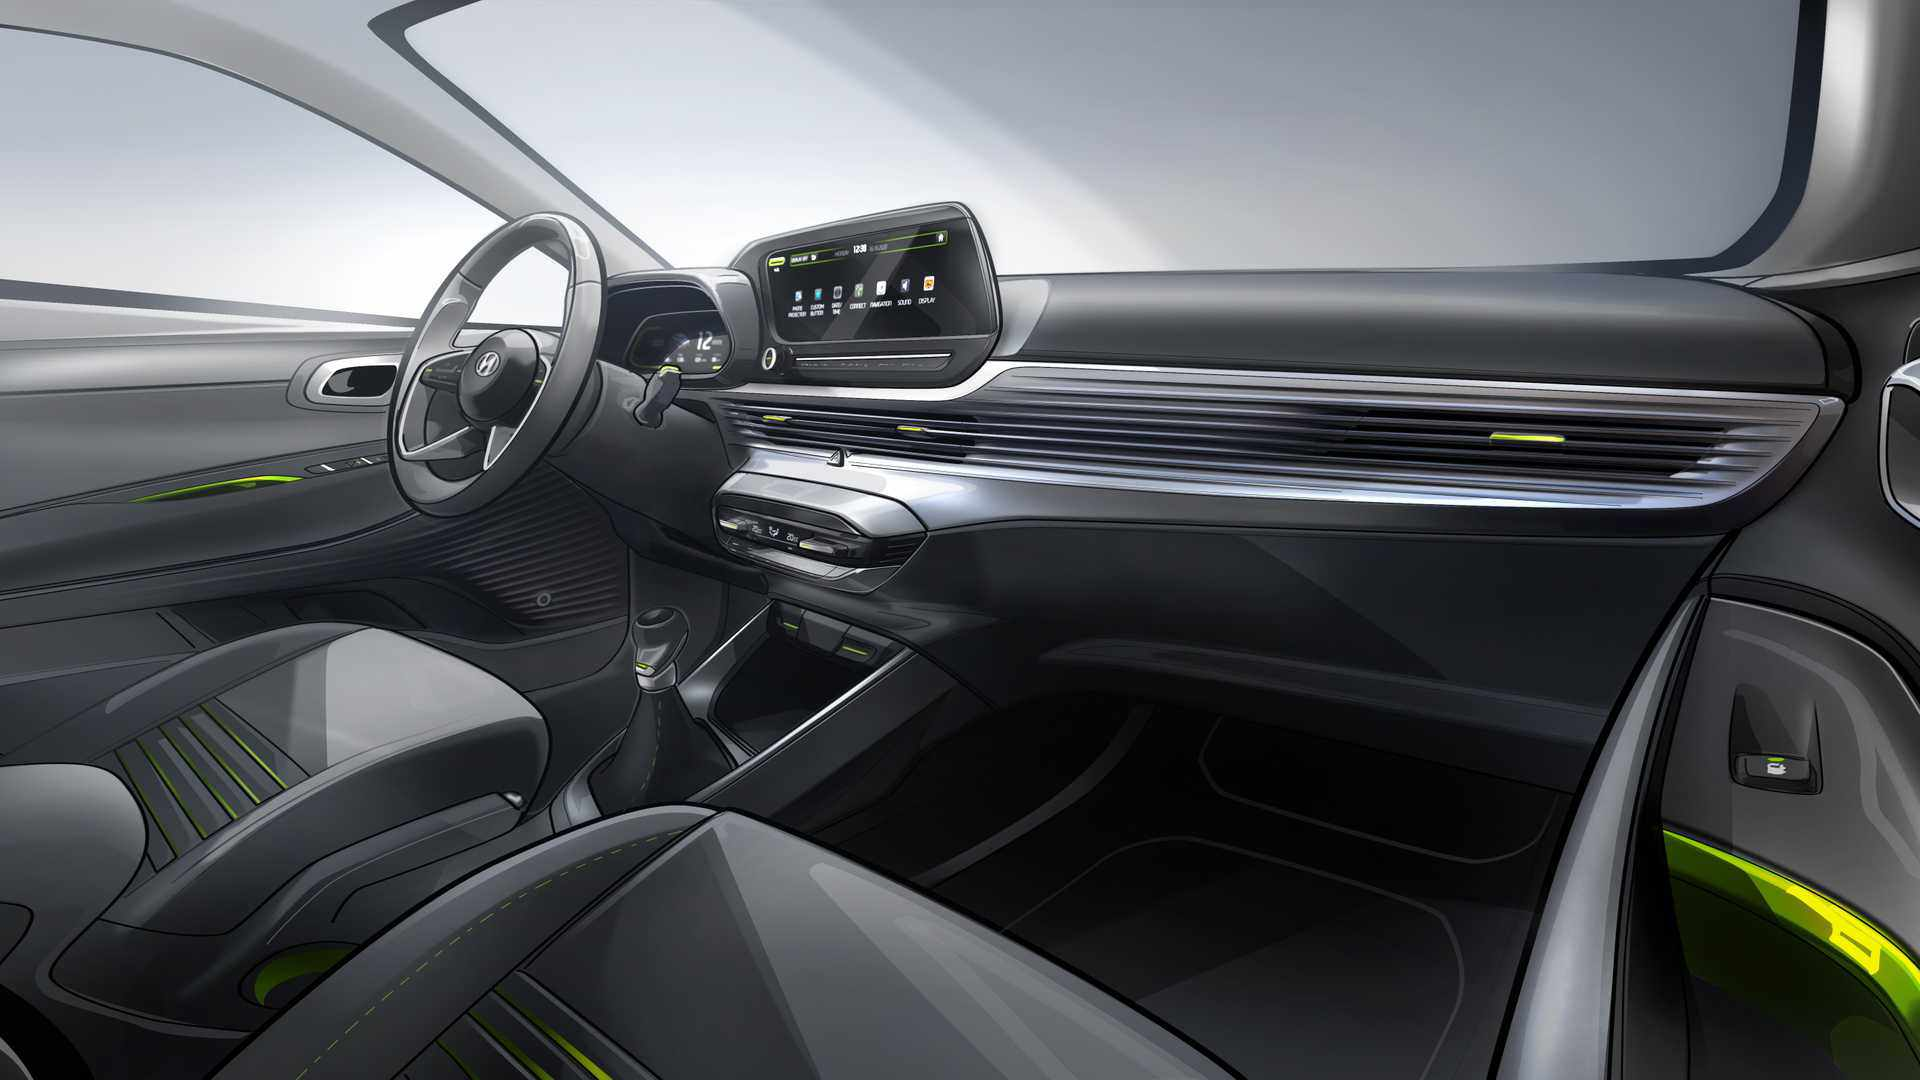 hyundai-i20-interior-sketch